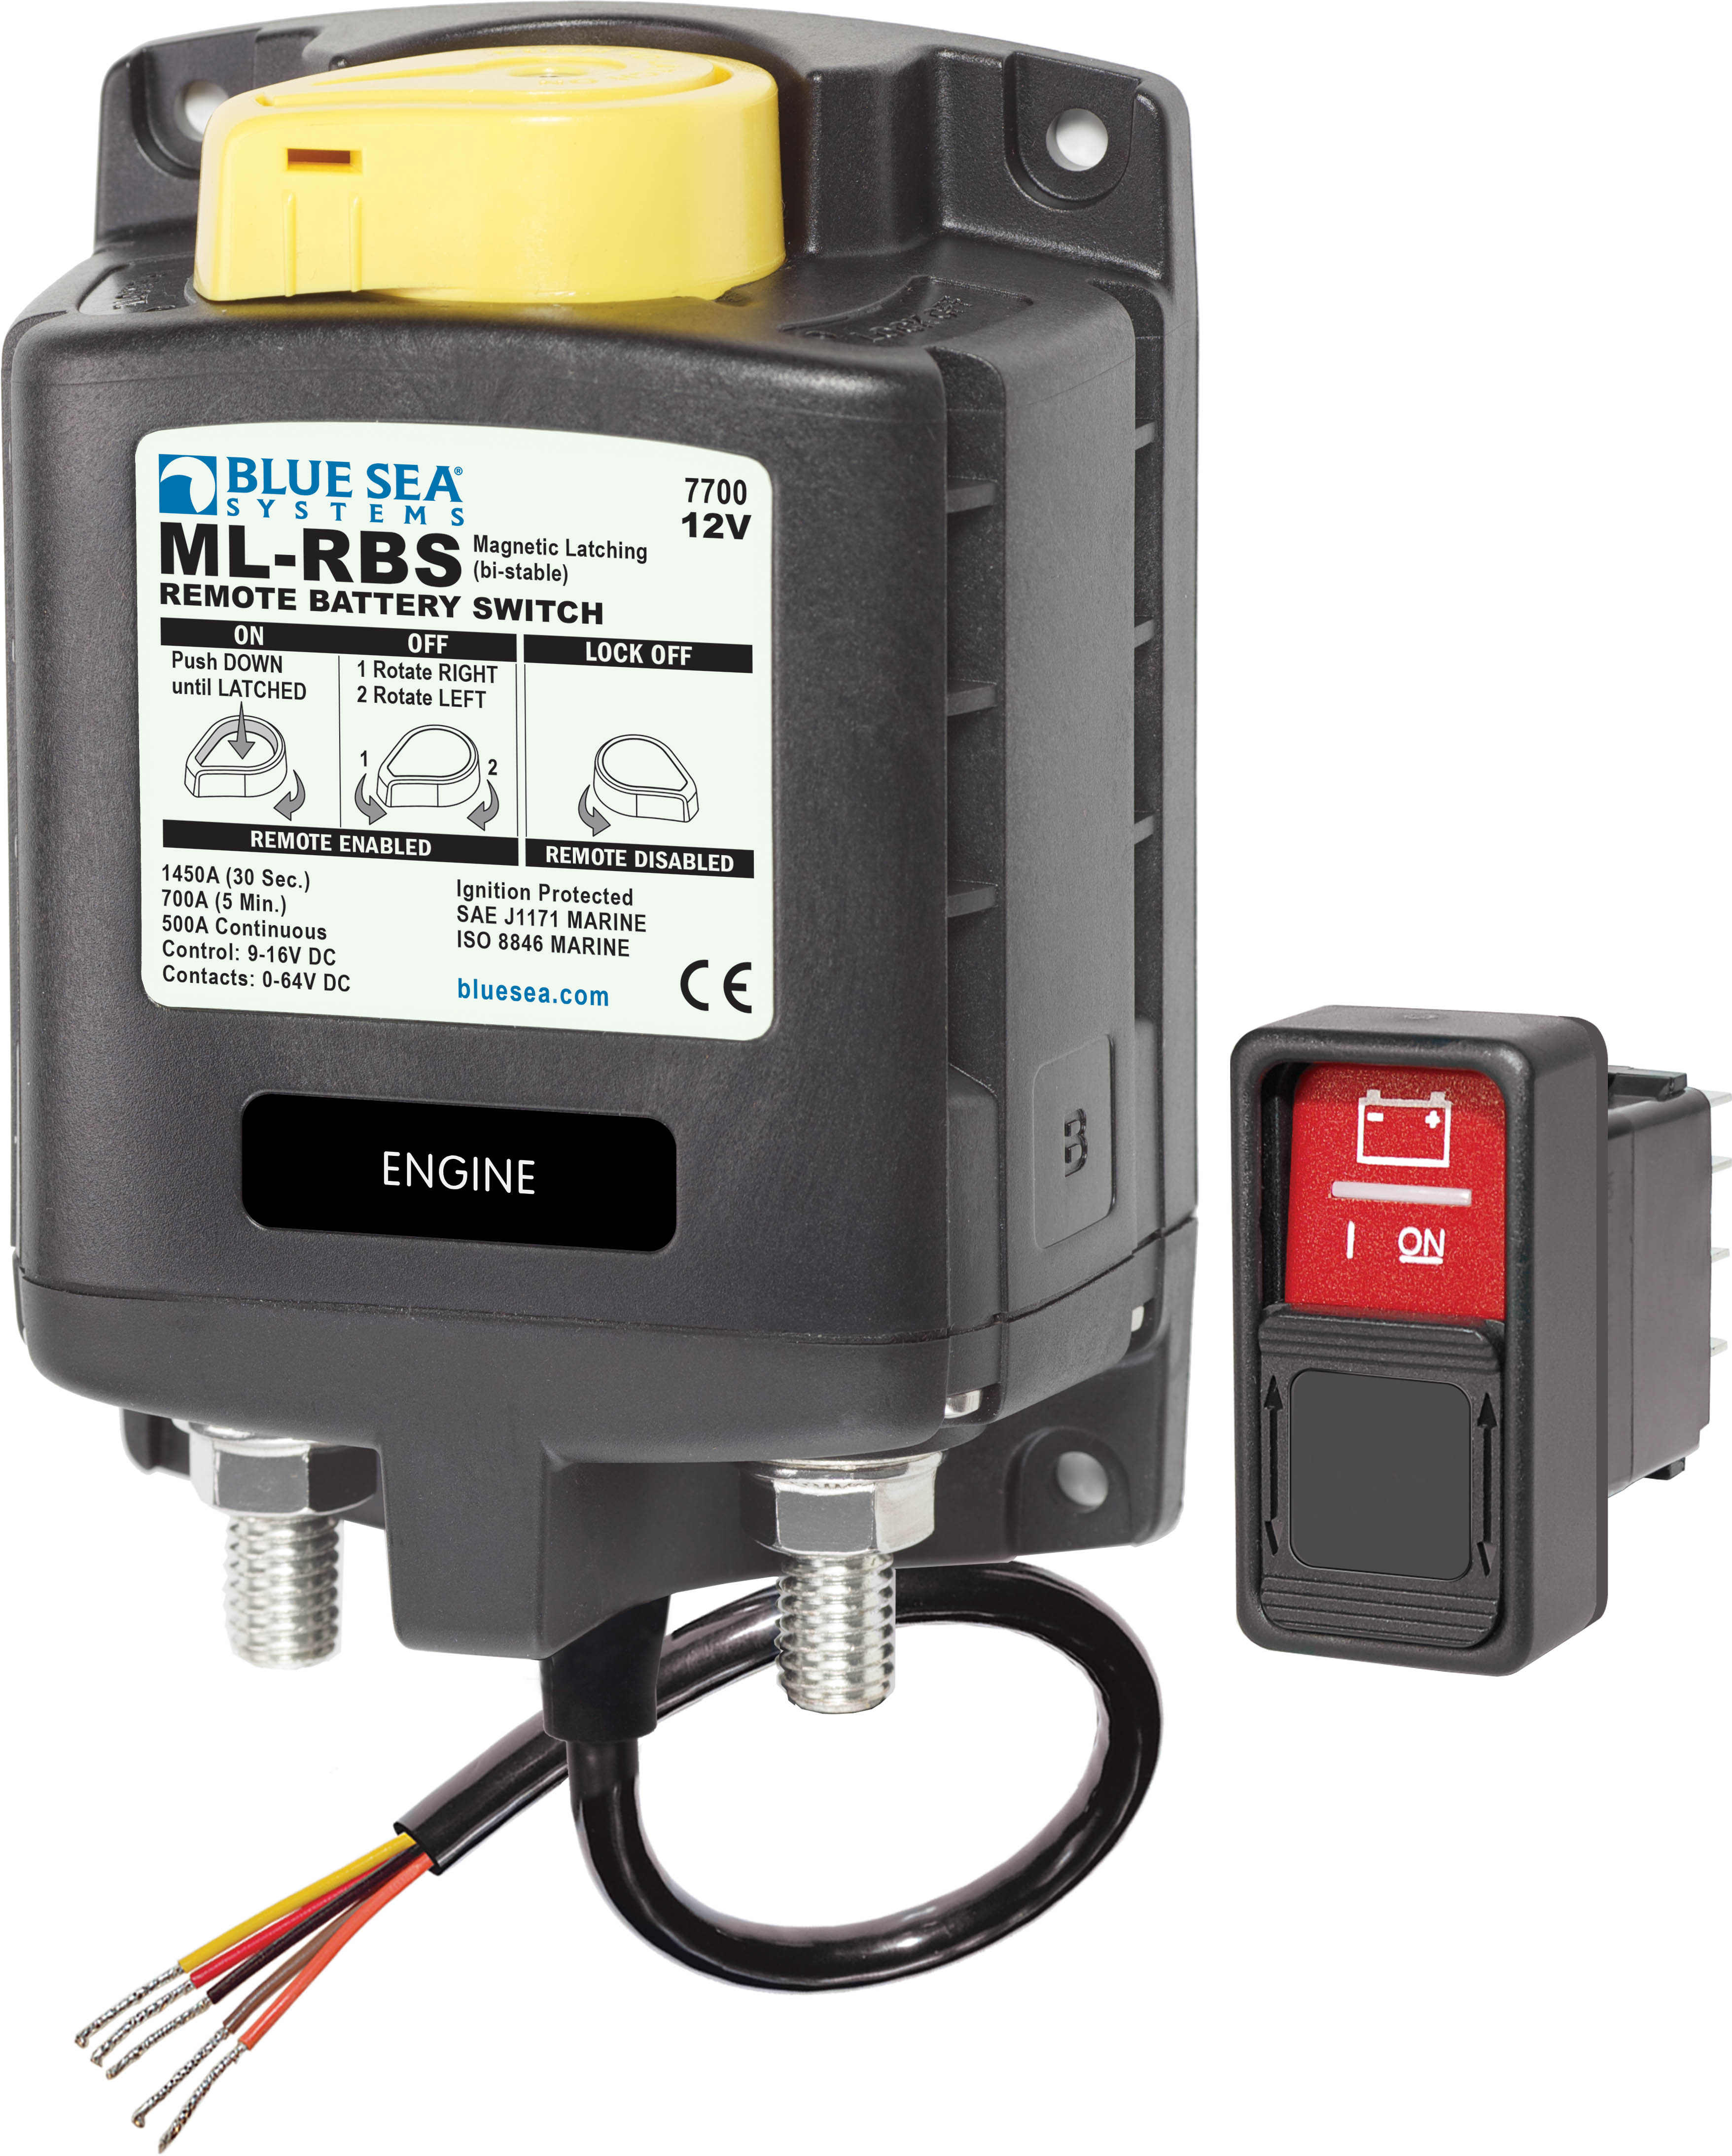 ml-rbs remote battery switch with manual control